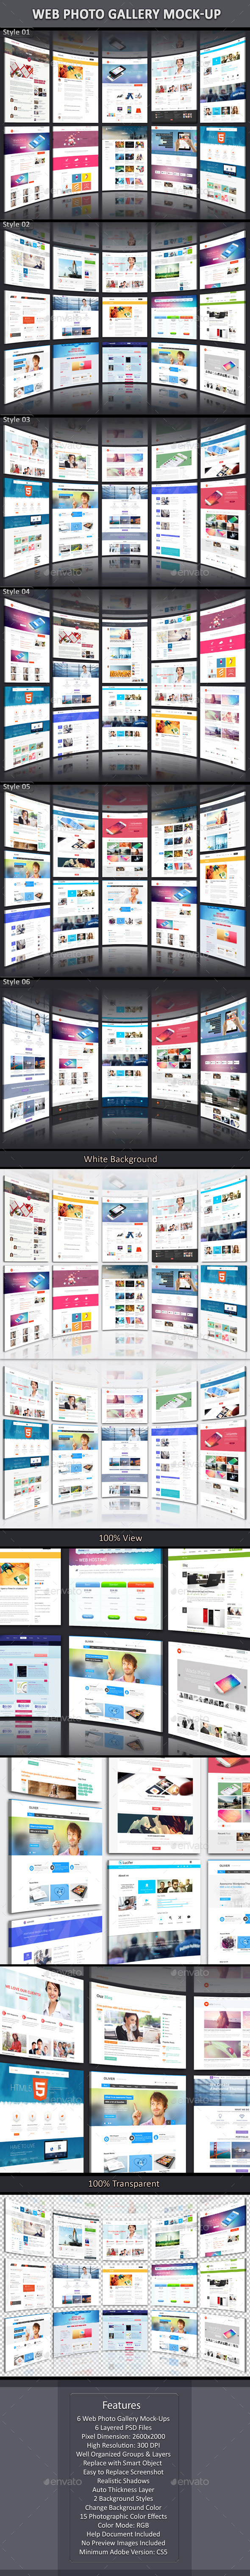 GraphicRiver Web Photo Gallery Mock-Up 11330637